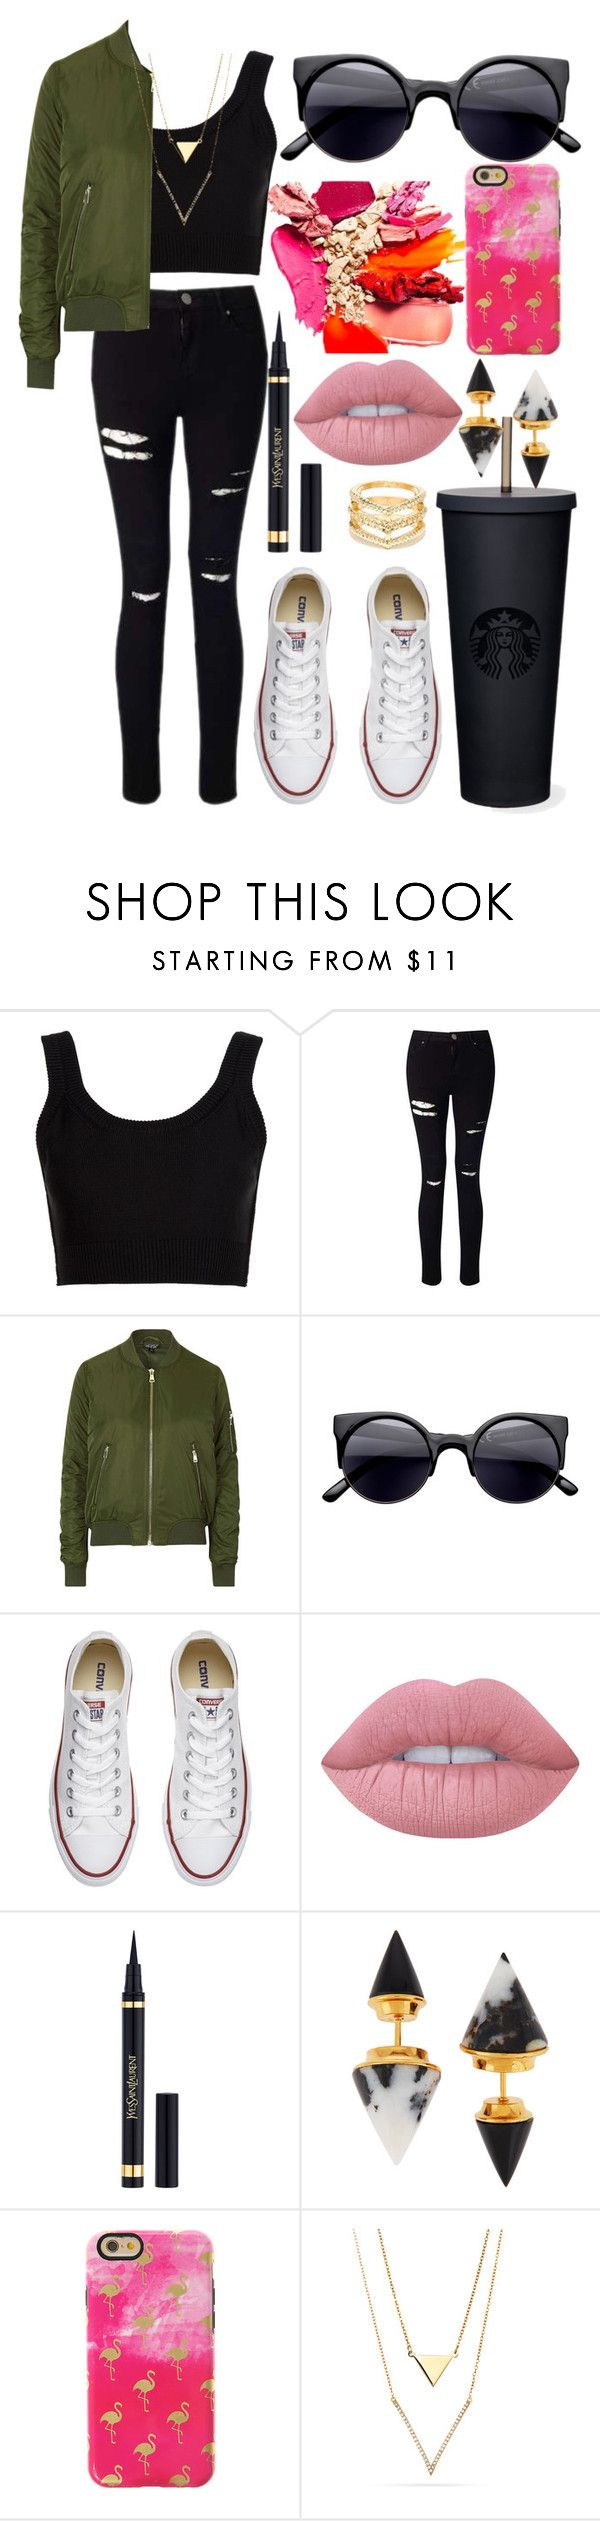 """""""Untitled #64"""" by graaceryyan ❤ liked on Polyvore featuring Calvin Klein Collection, Miss Selfridge, Topshop, Converse, Lime Crime, Yves Saint Laurent, Vita Fede, claire's and LULUS"""